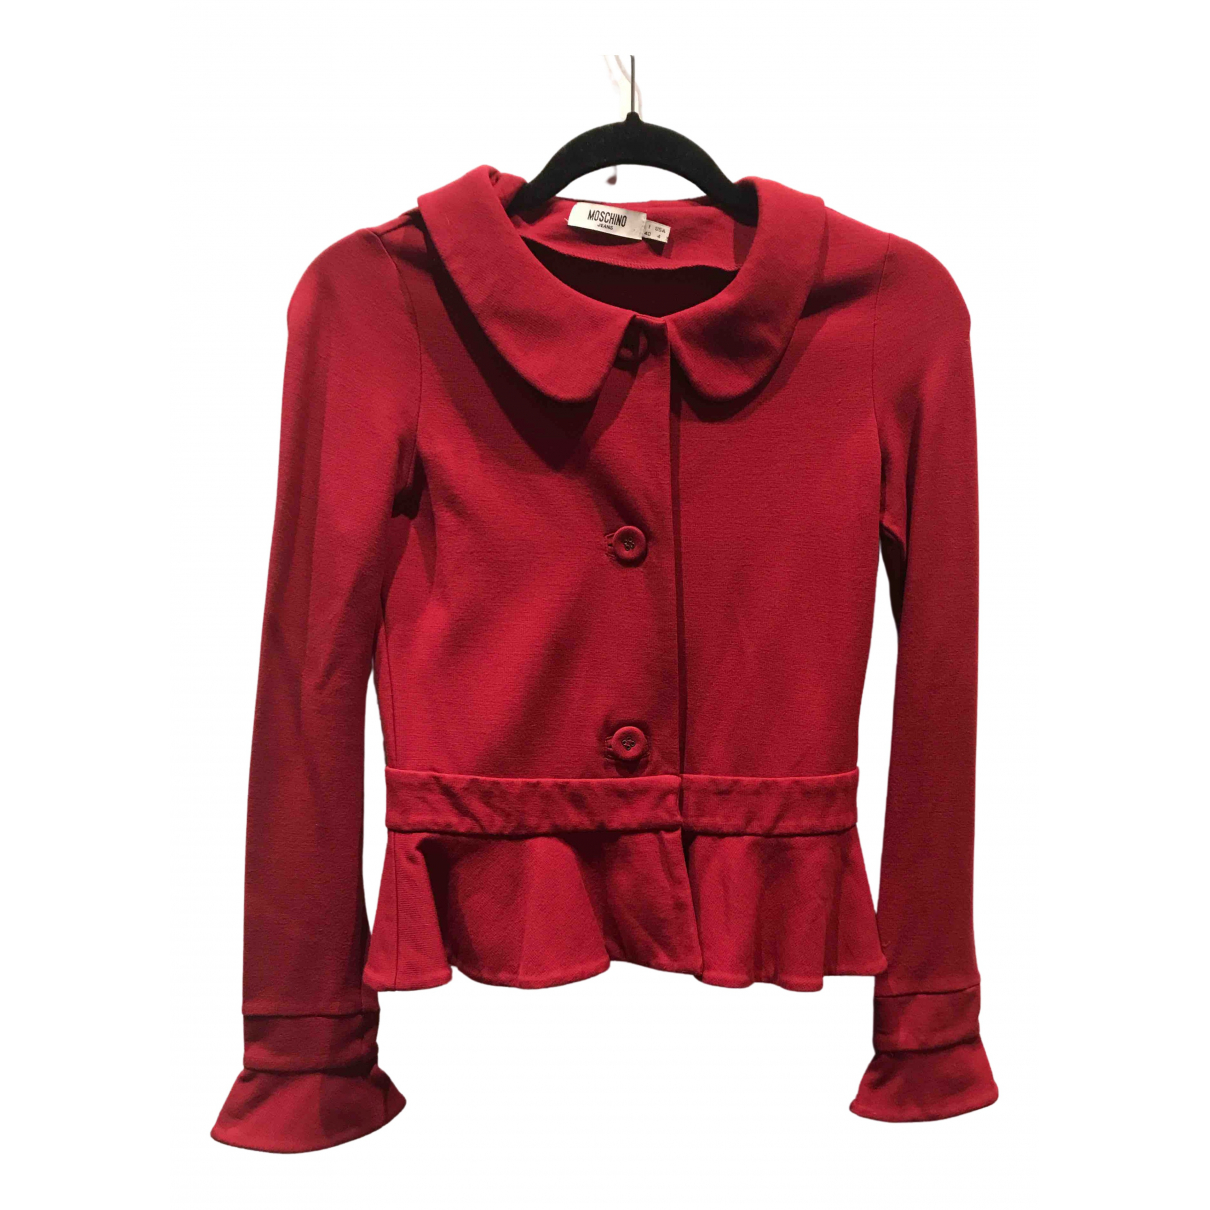 Moschino Cheap And Chic \N Red Cotton jacket for Women 4 US